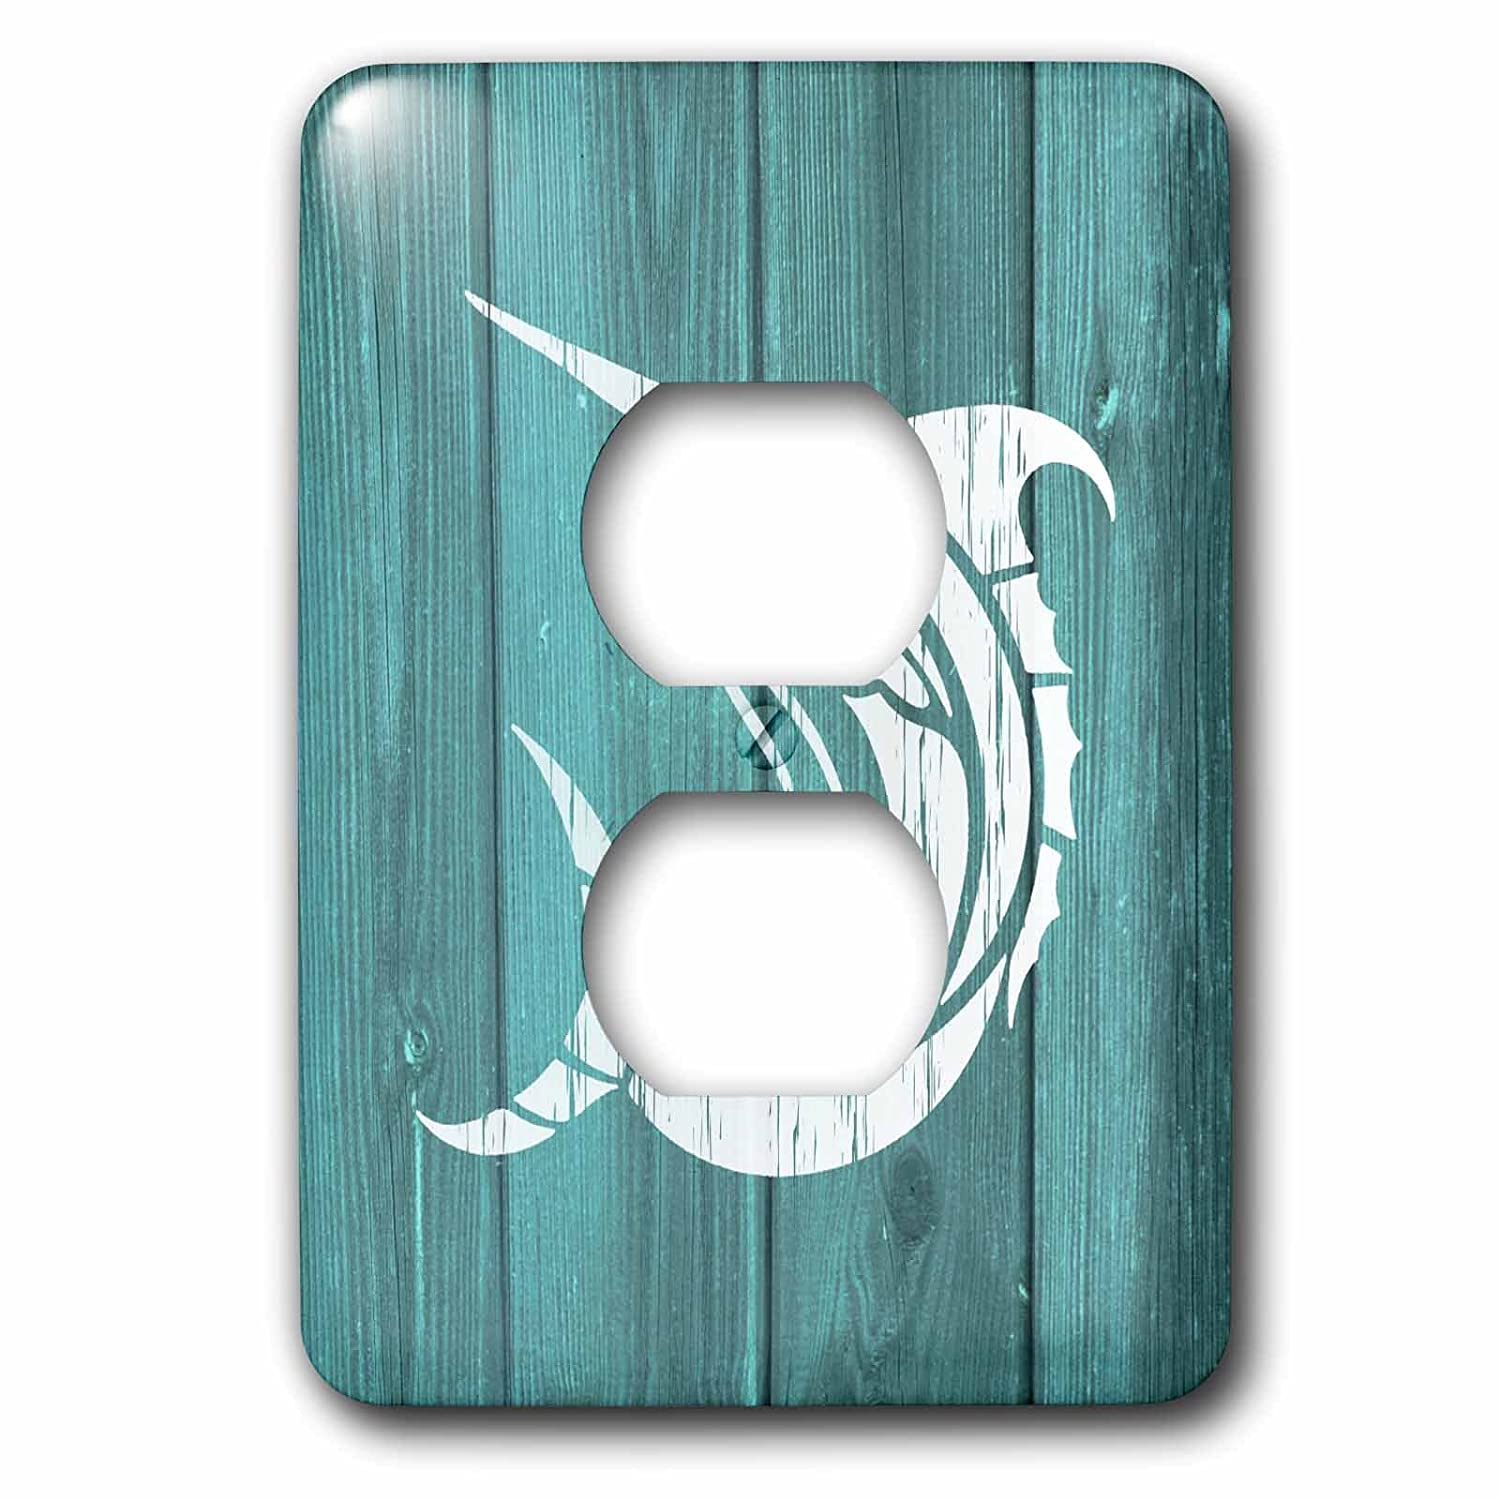 3dRose LSP/_220424/_6 Marlin Cracked White Paint Design on Blue Effect-not Real Wood 2 Plug Outlet Cover